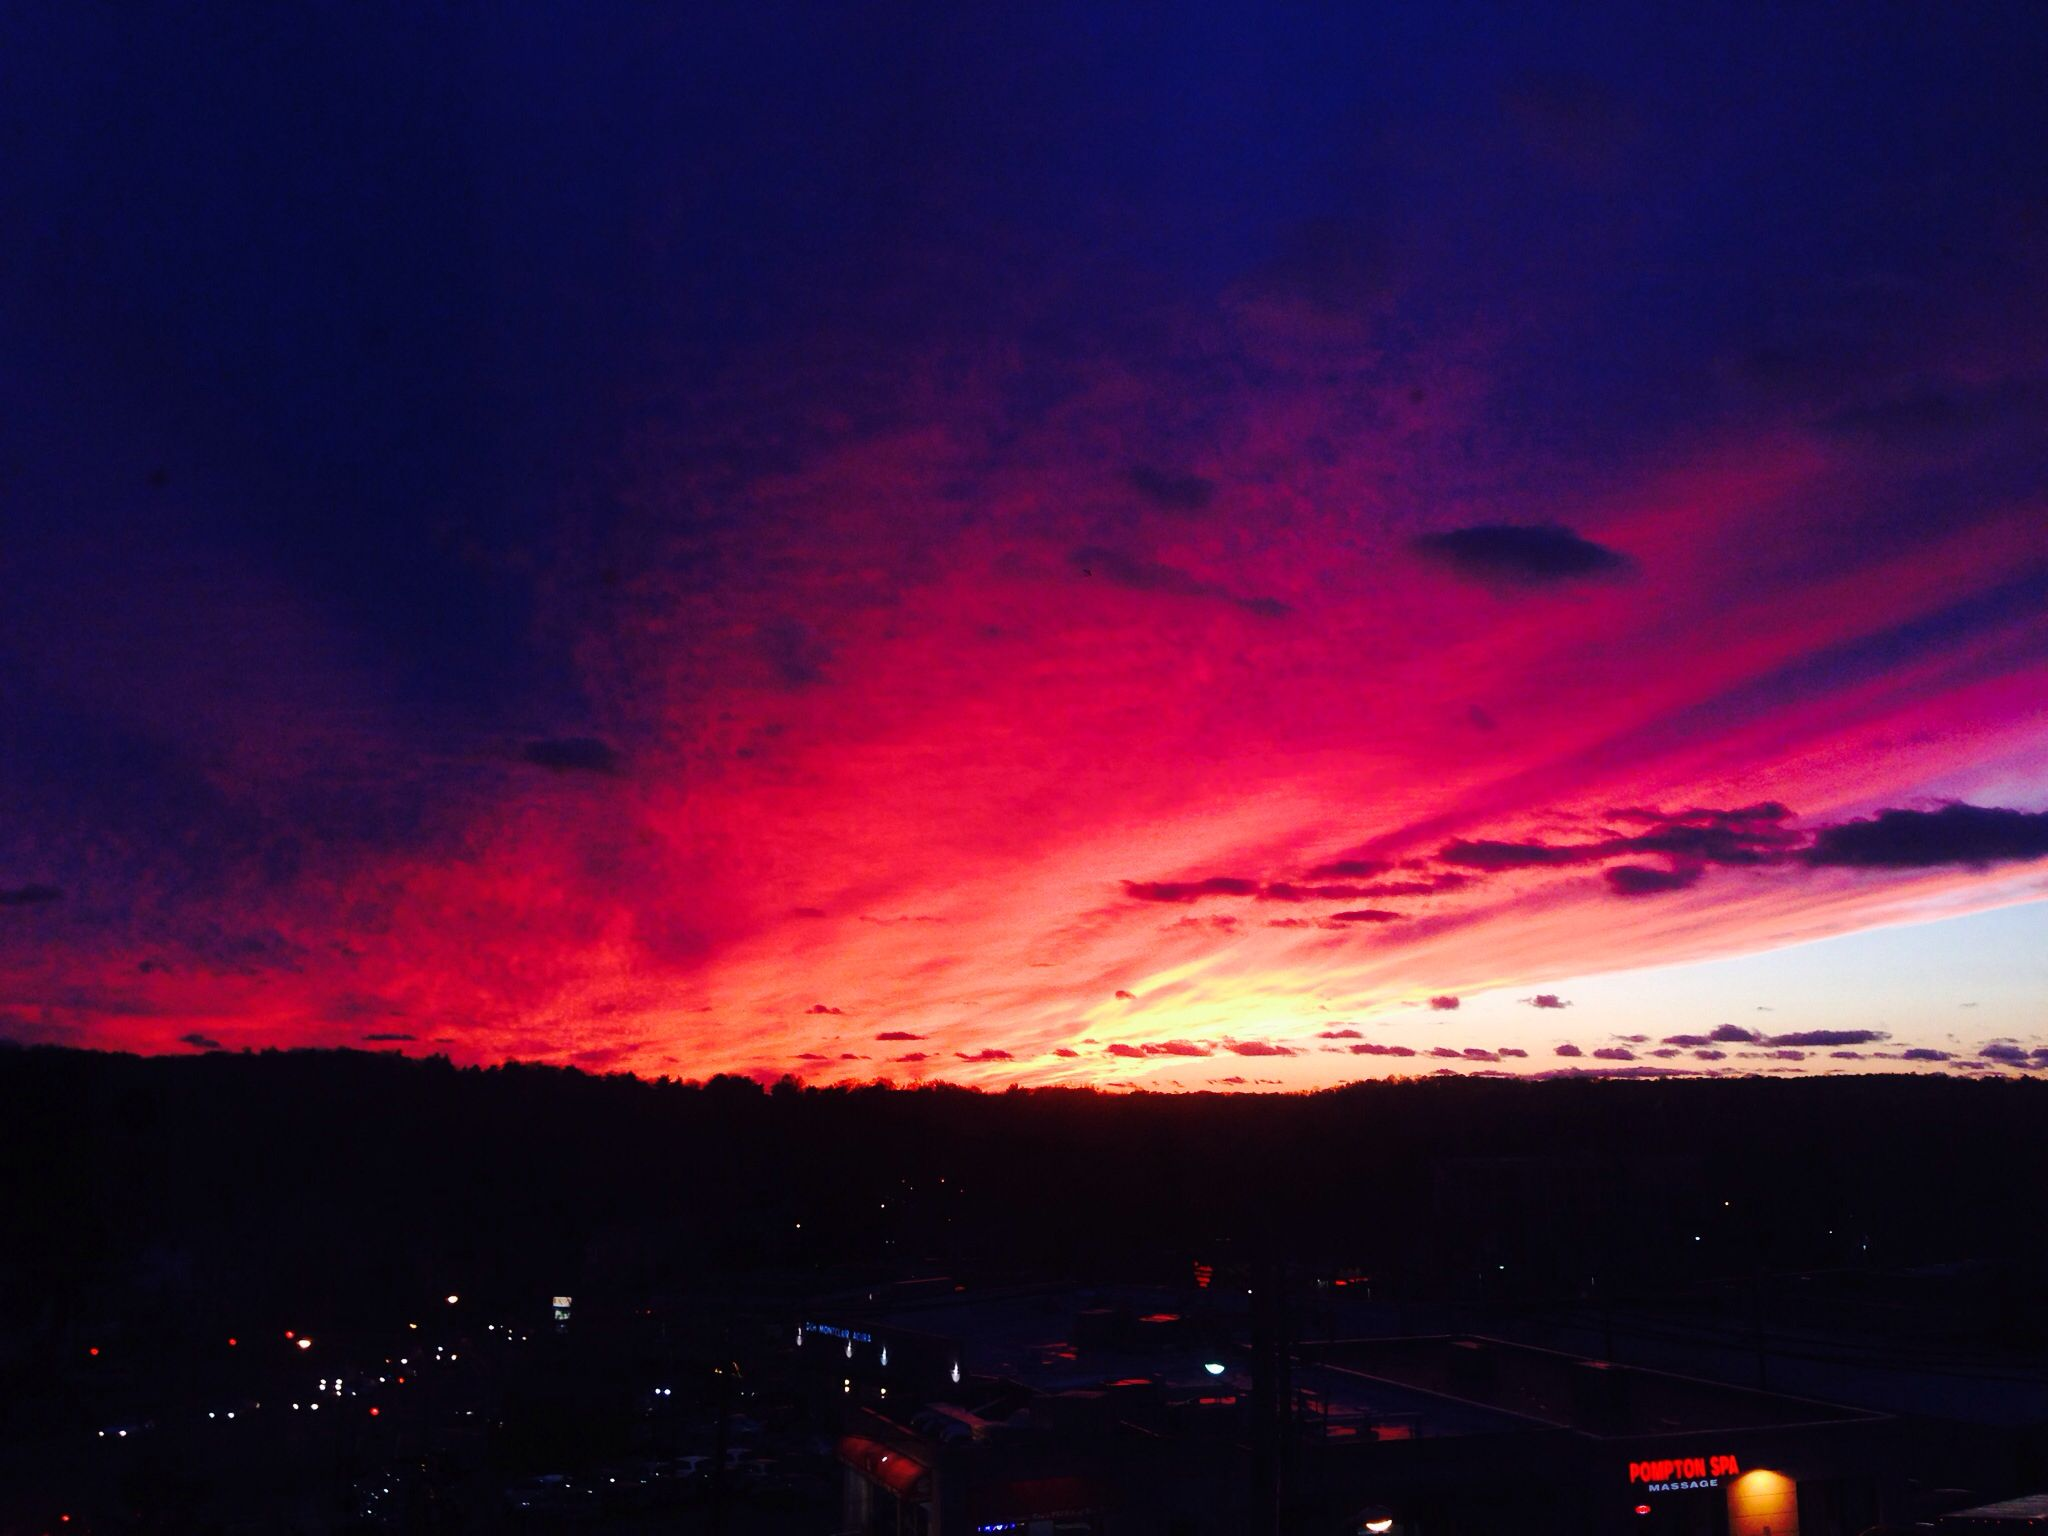 Let us take a moment to appreciate the stunning sunset we had ...